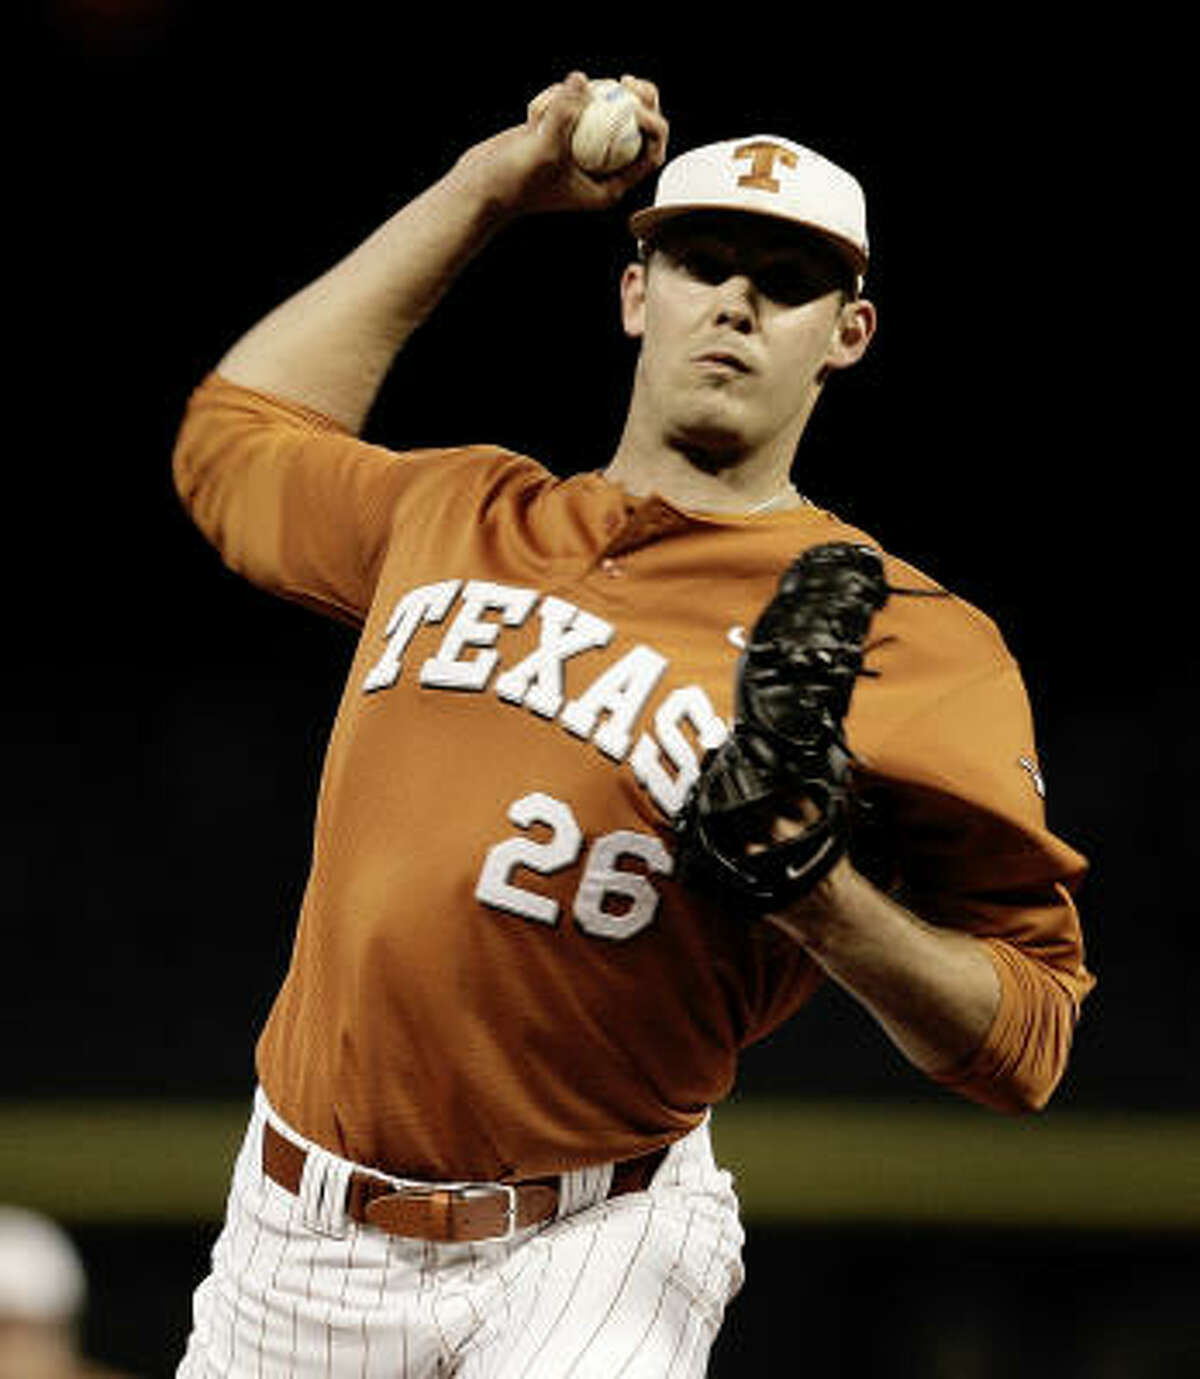 Texas pitcher Taylor Jungmann allowed only one run and struck out eight batters over 7 2/3 innings in Friday's 2-1 win over Rice in the Houston College Classic at Minute Maid Park. He received a no-decision.